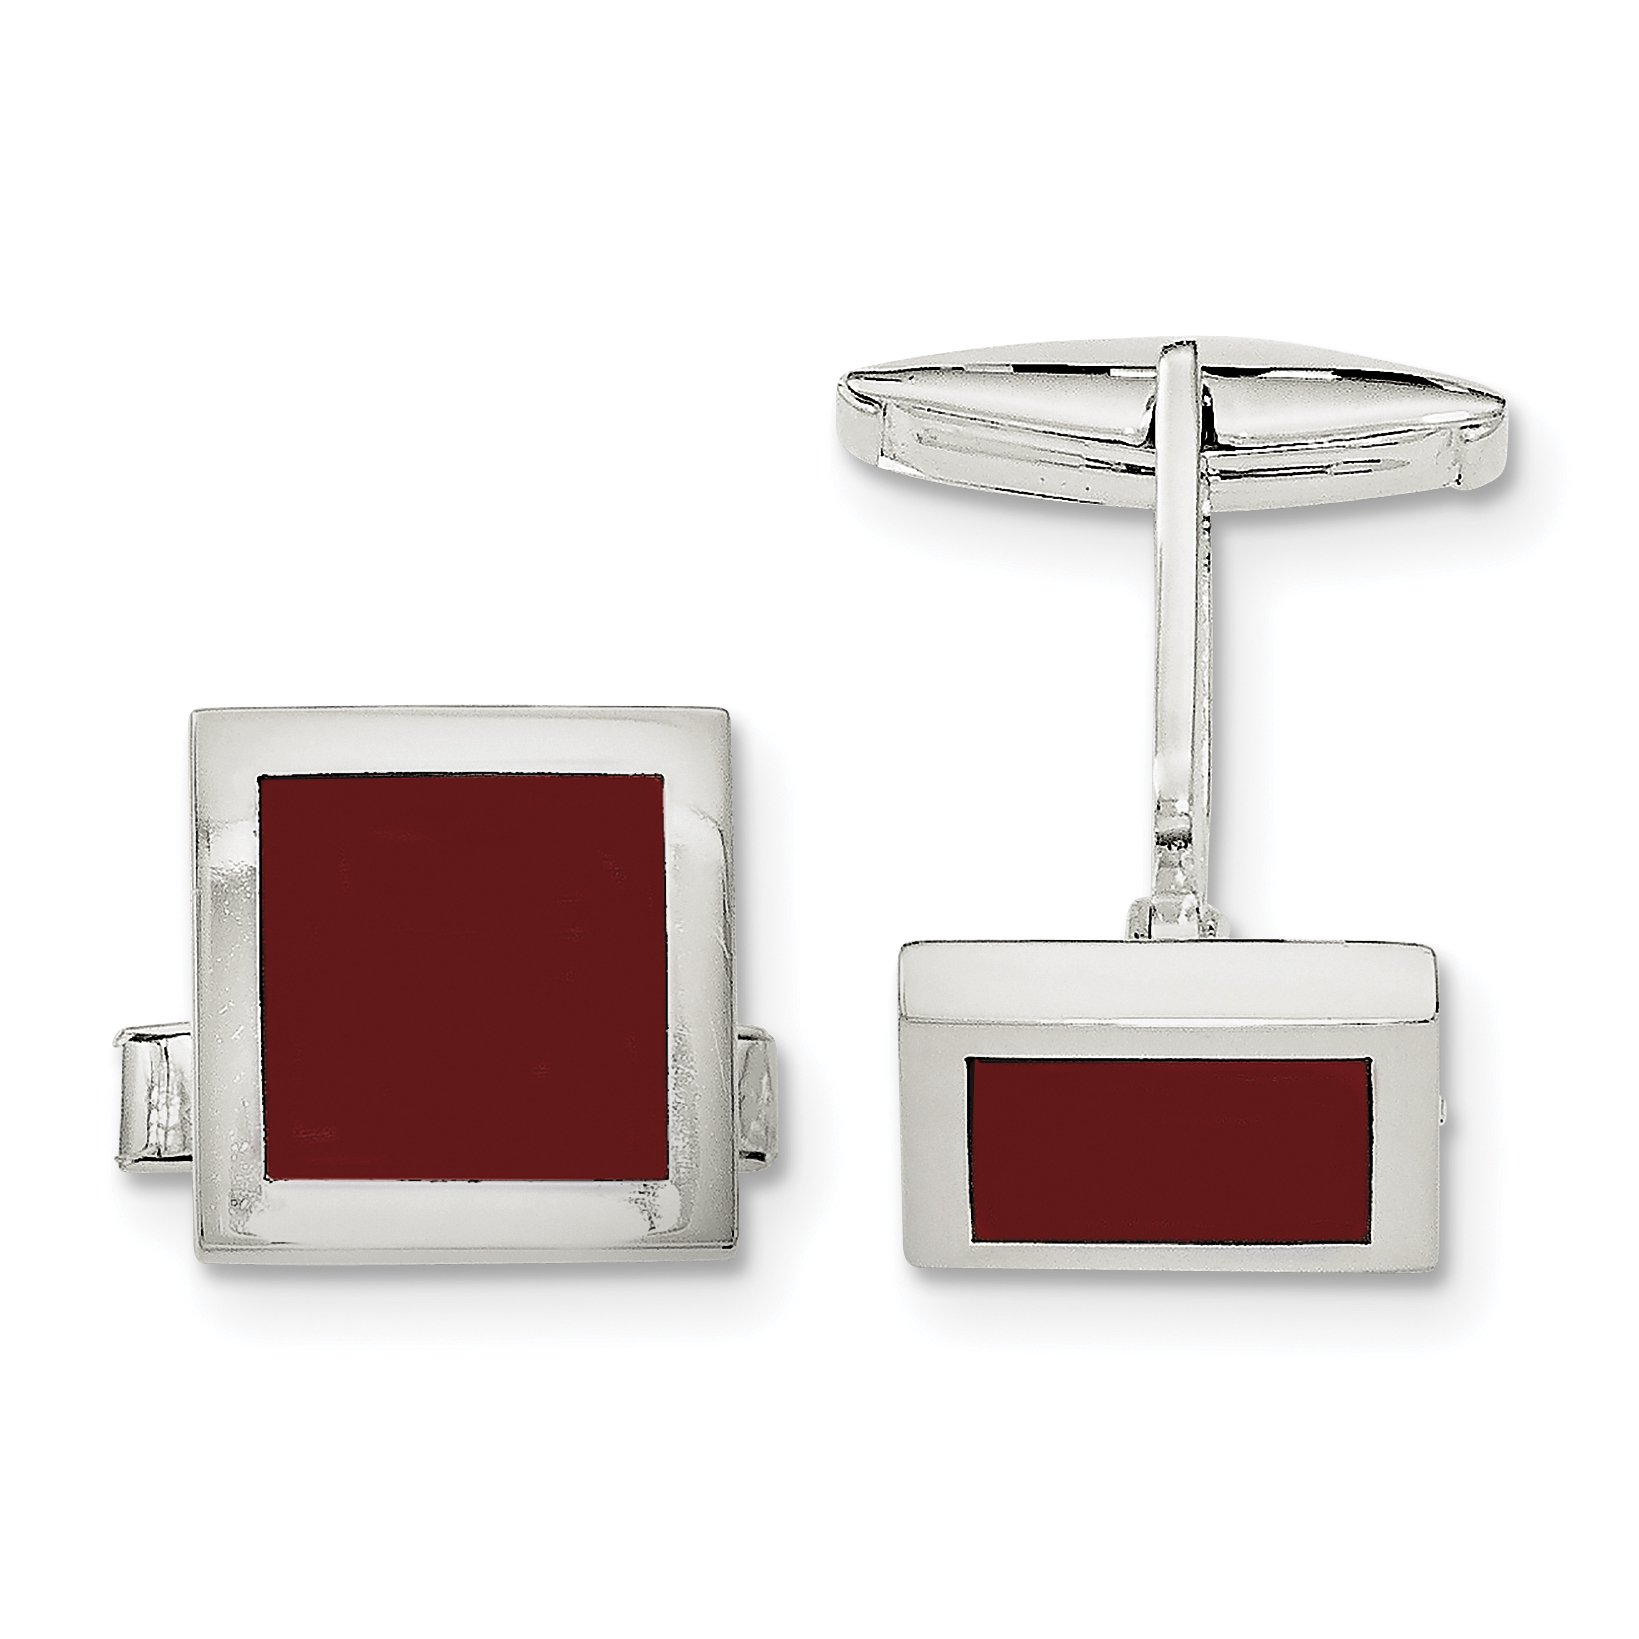 ICE CARATS 925 Sterling Silver Red Agate Cuff Links Mens Cufflinks Link Fine Jewelry Dad Mens Gift Set